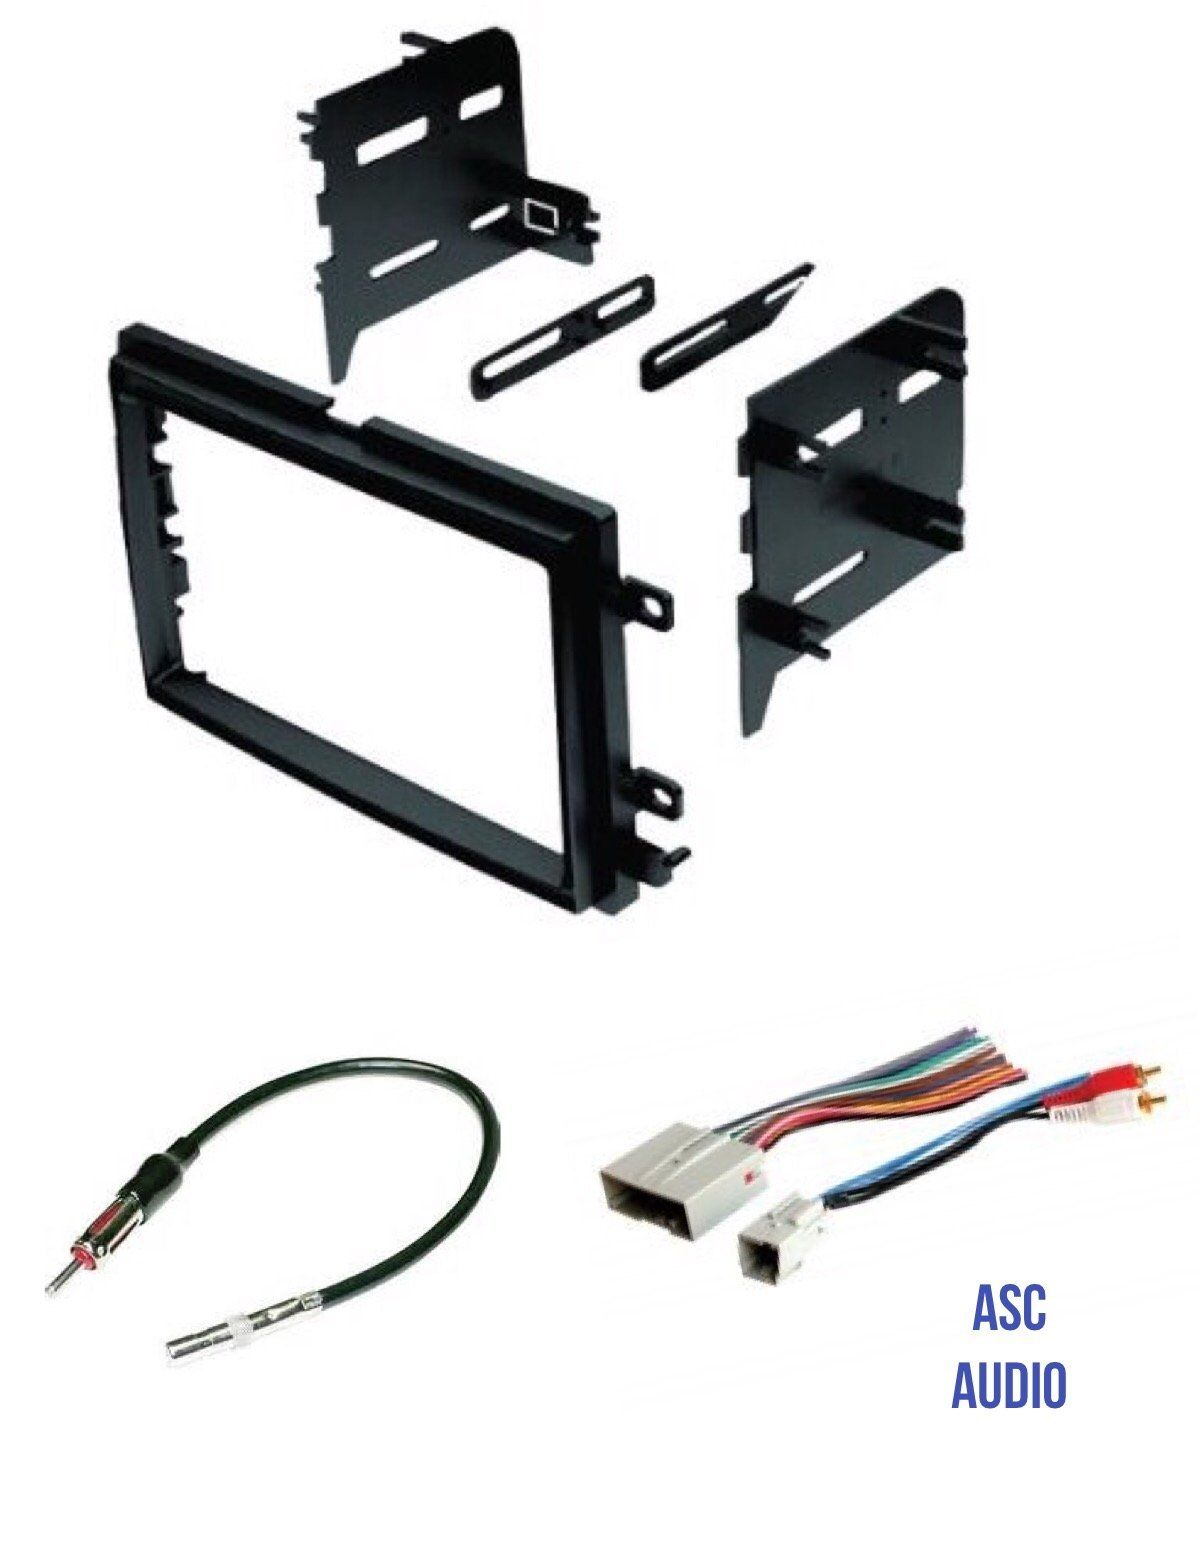 medium resolution of asc audio car stereo radio install dash kit wire harness and antenna adapter to install a double din radio for some ford lincoln mercury vehicles